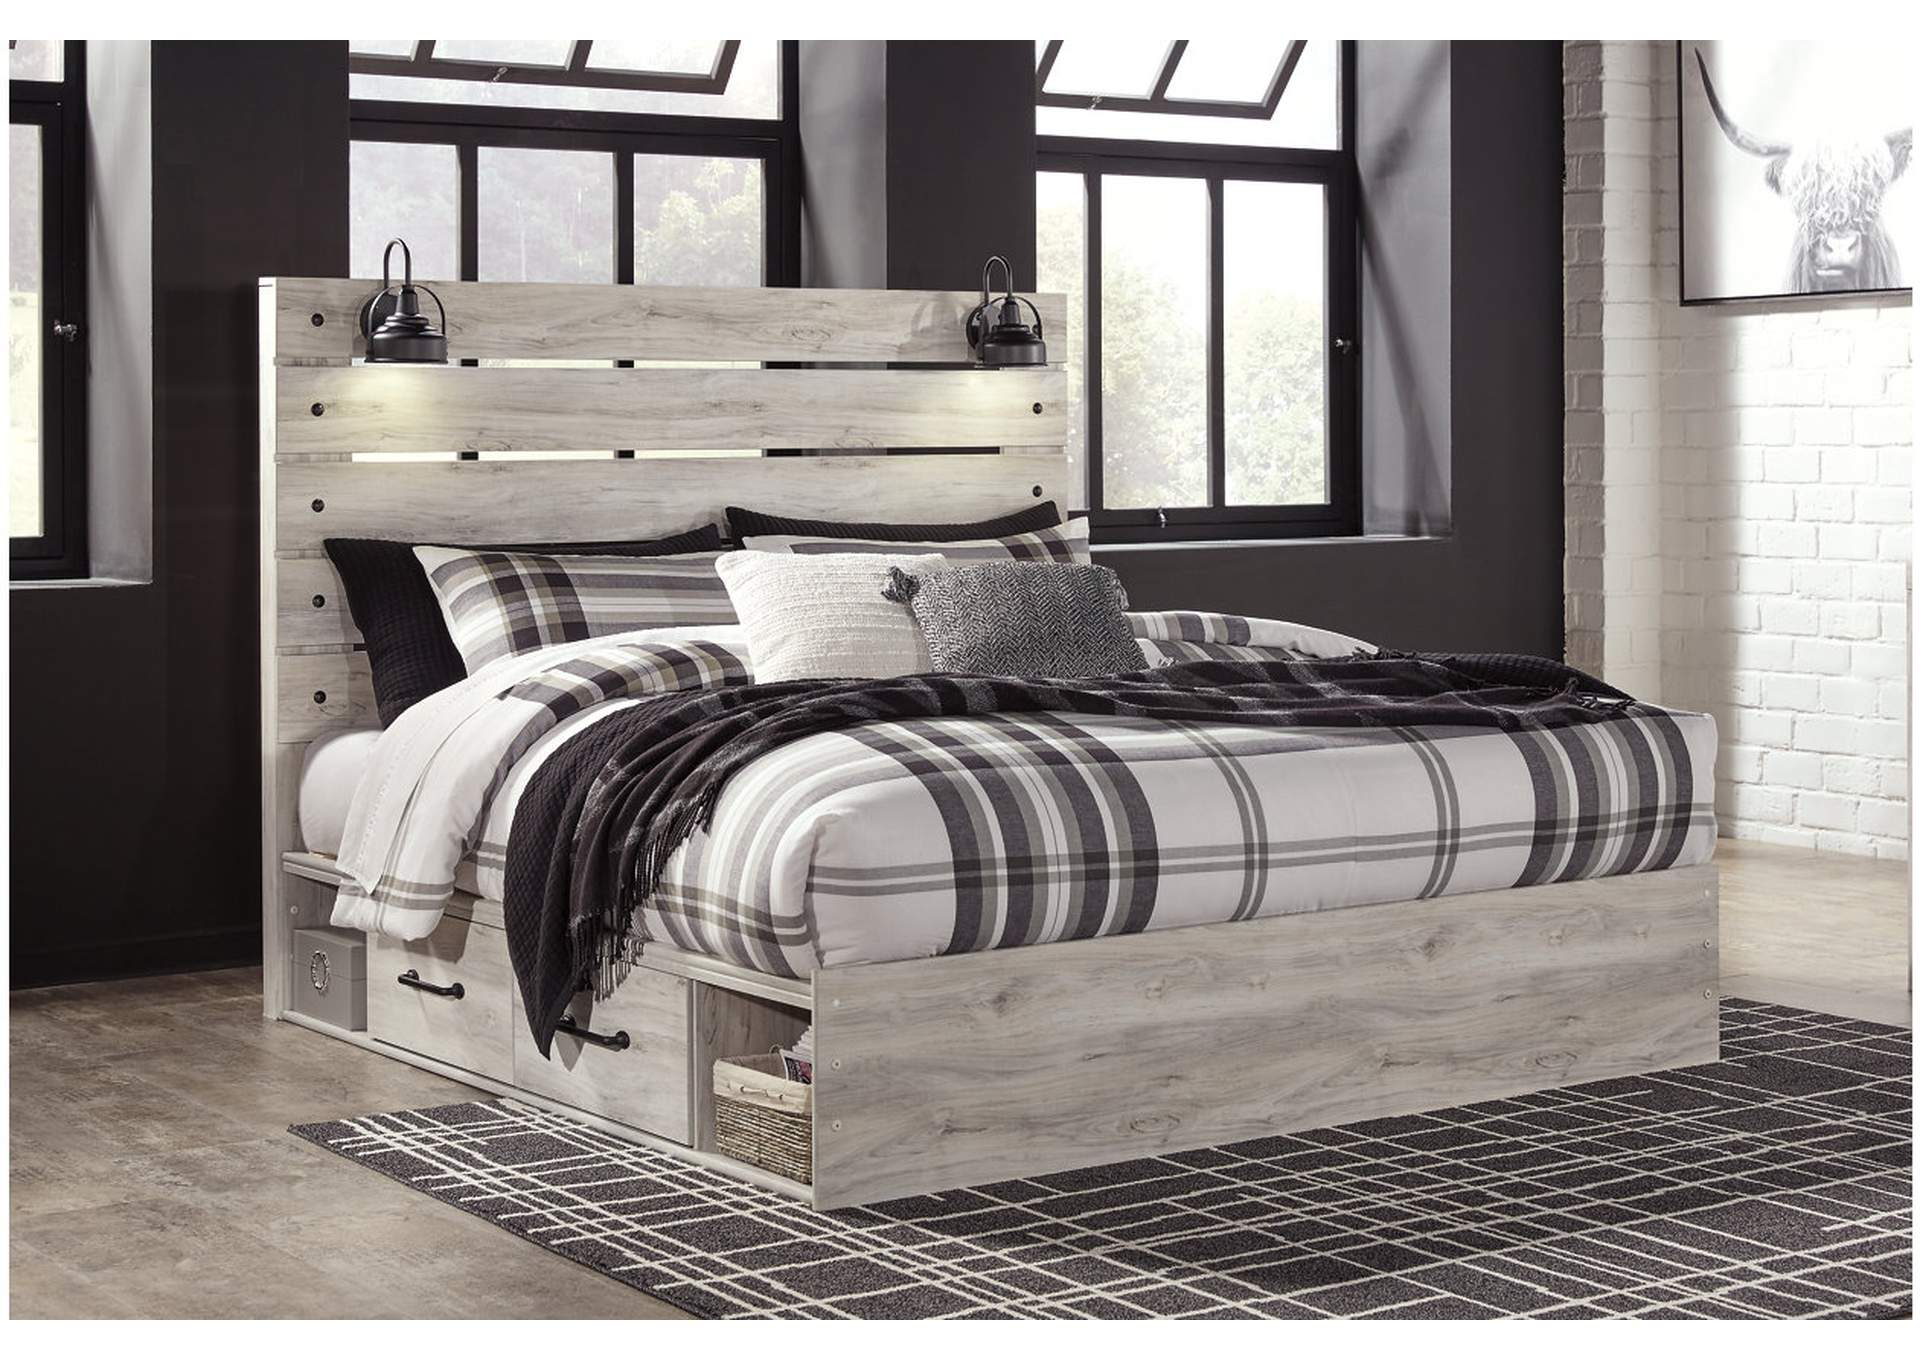 Cambeck King Panel Bed with 4 Underbed Storage Drawers,Signature Design By Ashley